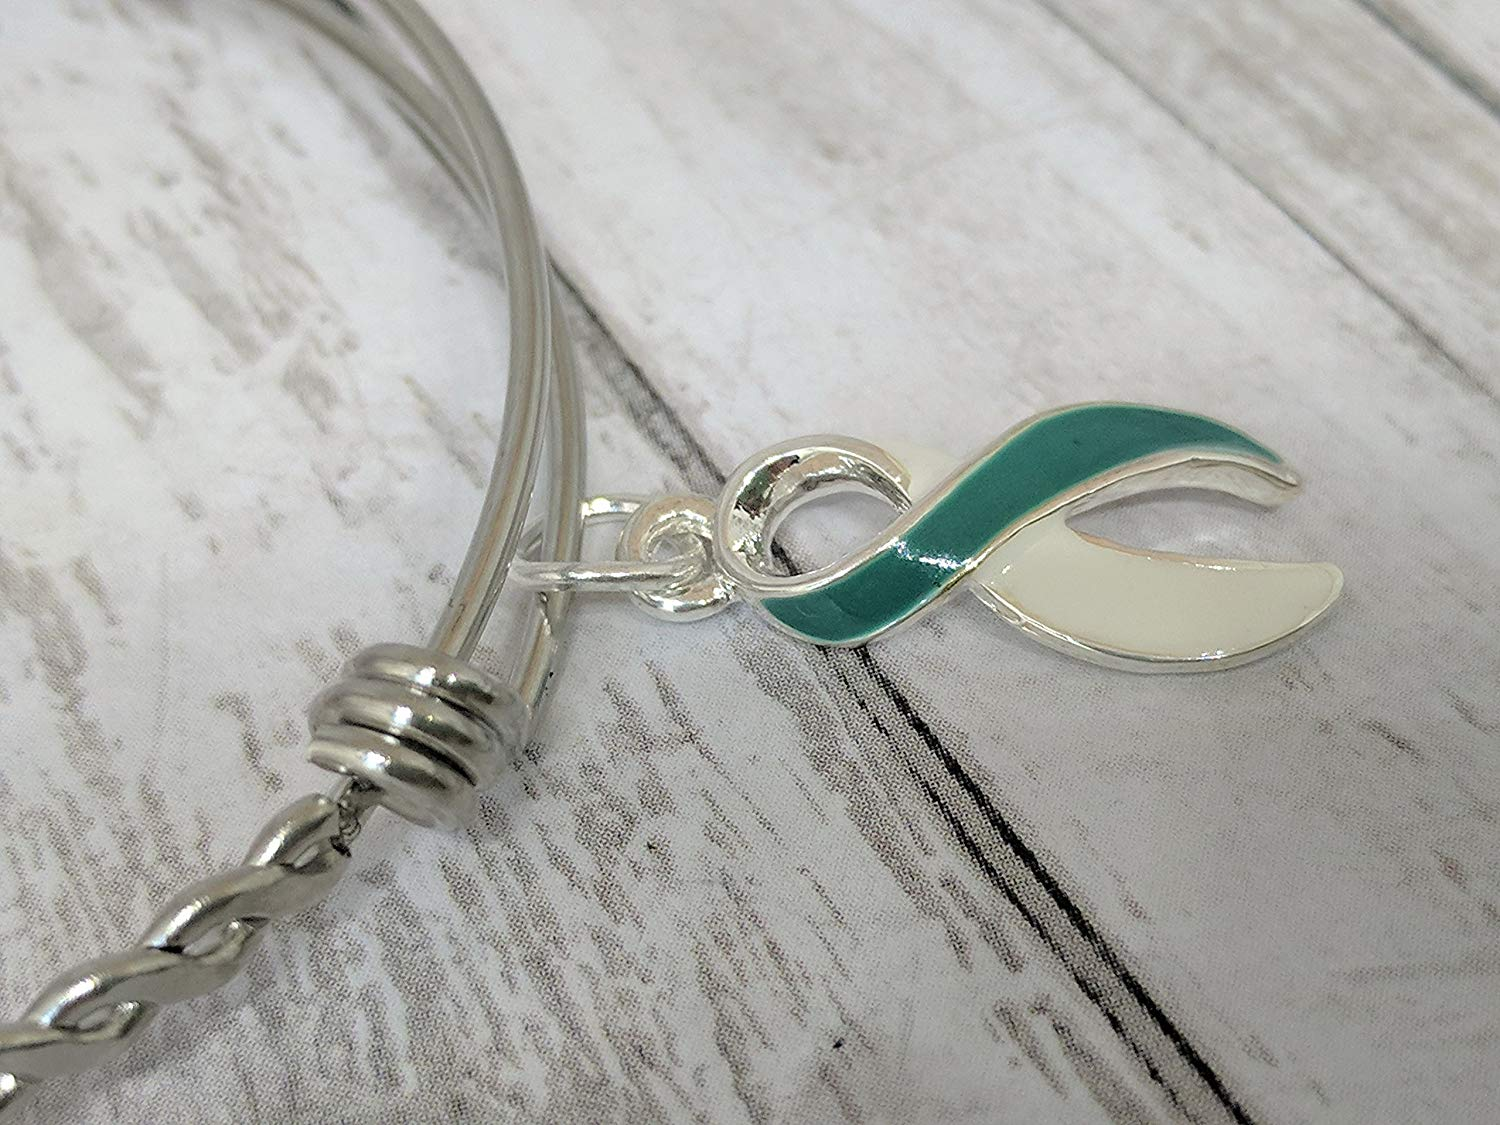 Cervical Cancer awareness ribbon bangle bracelet: Teal and White Awareness Ribbon